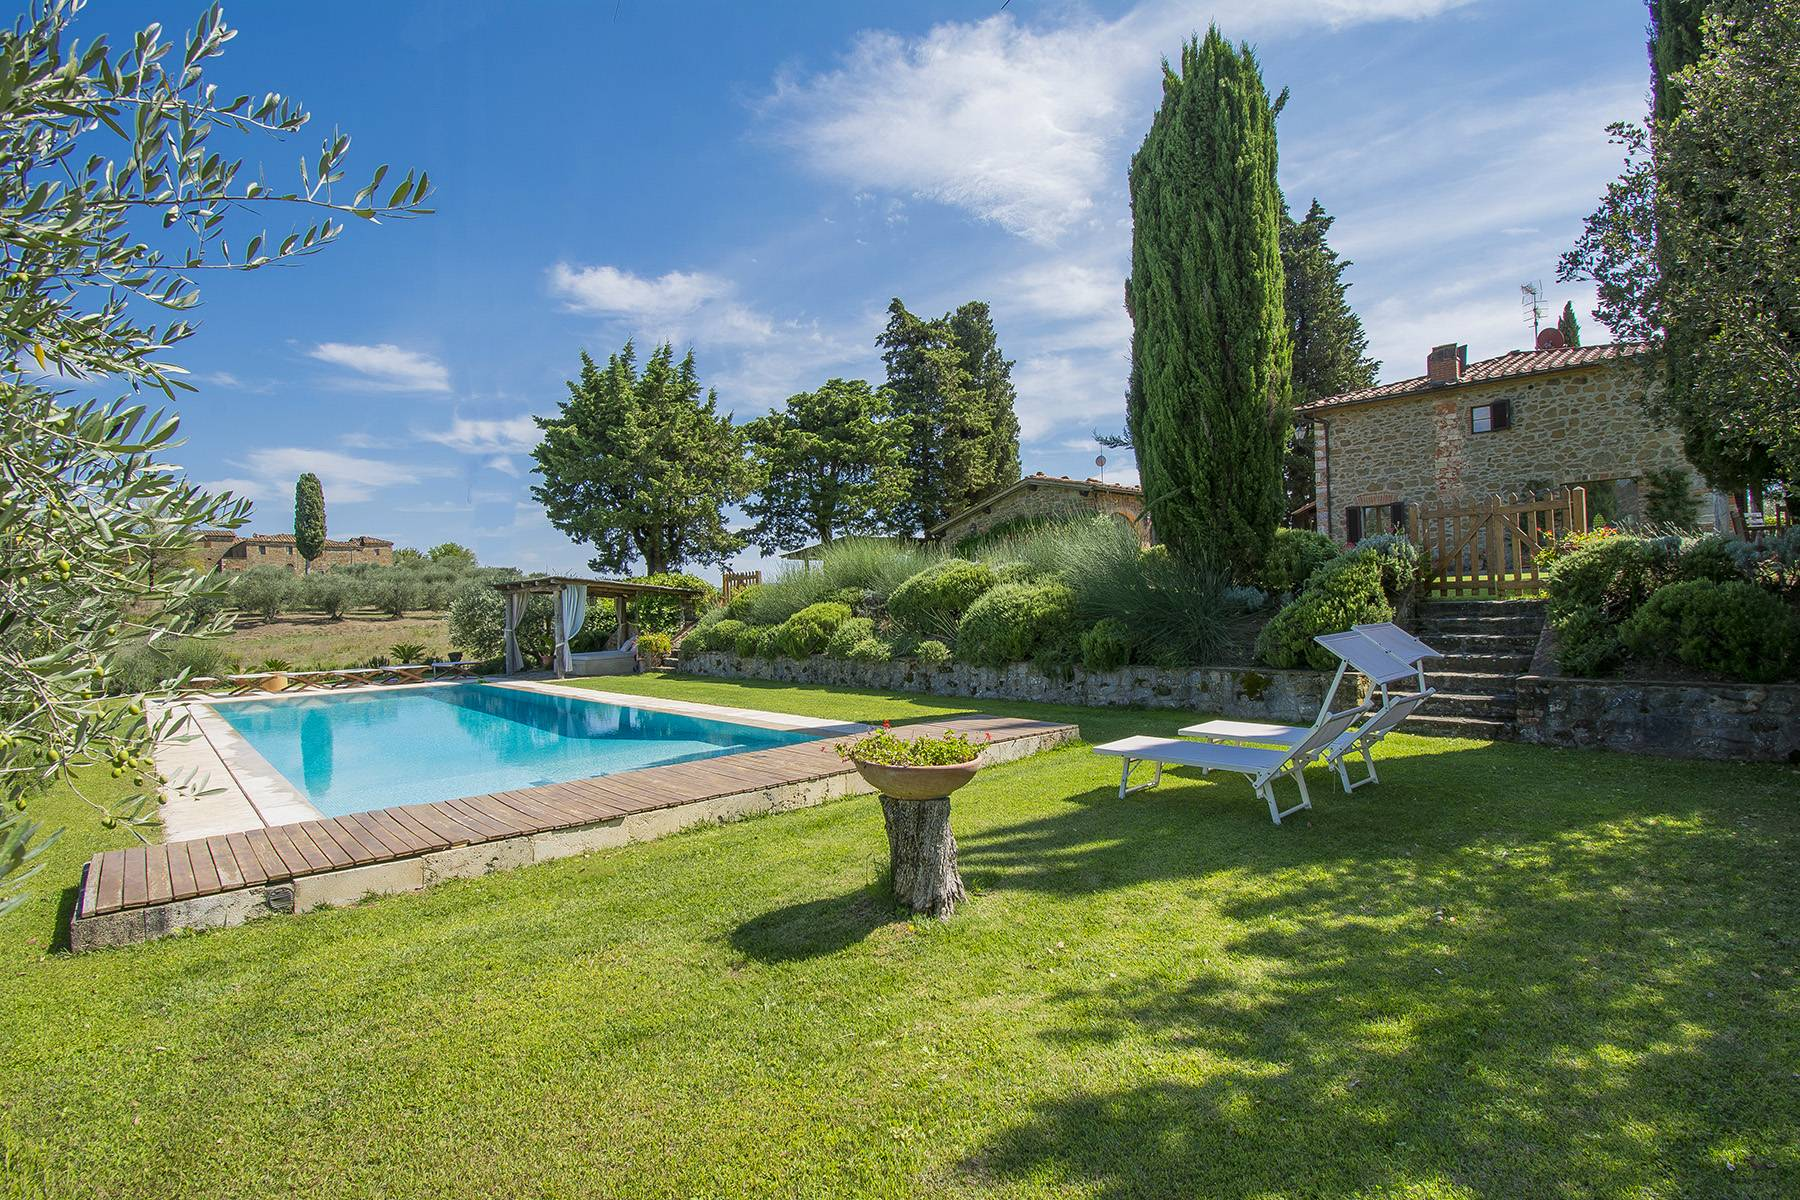 House in the Tuscan Hills for Sale - 2